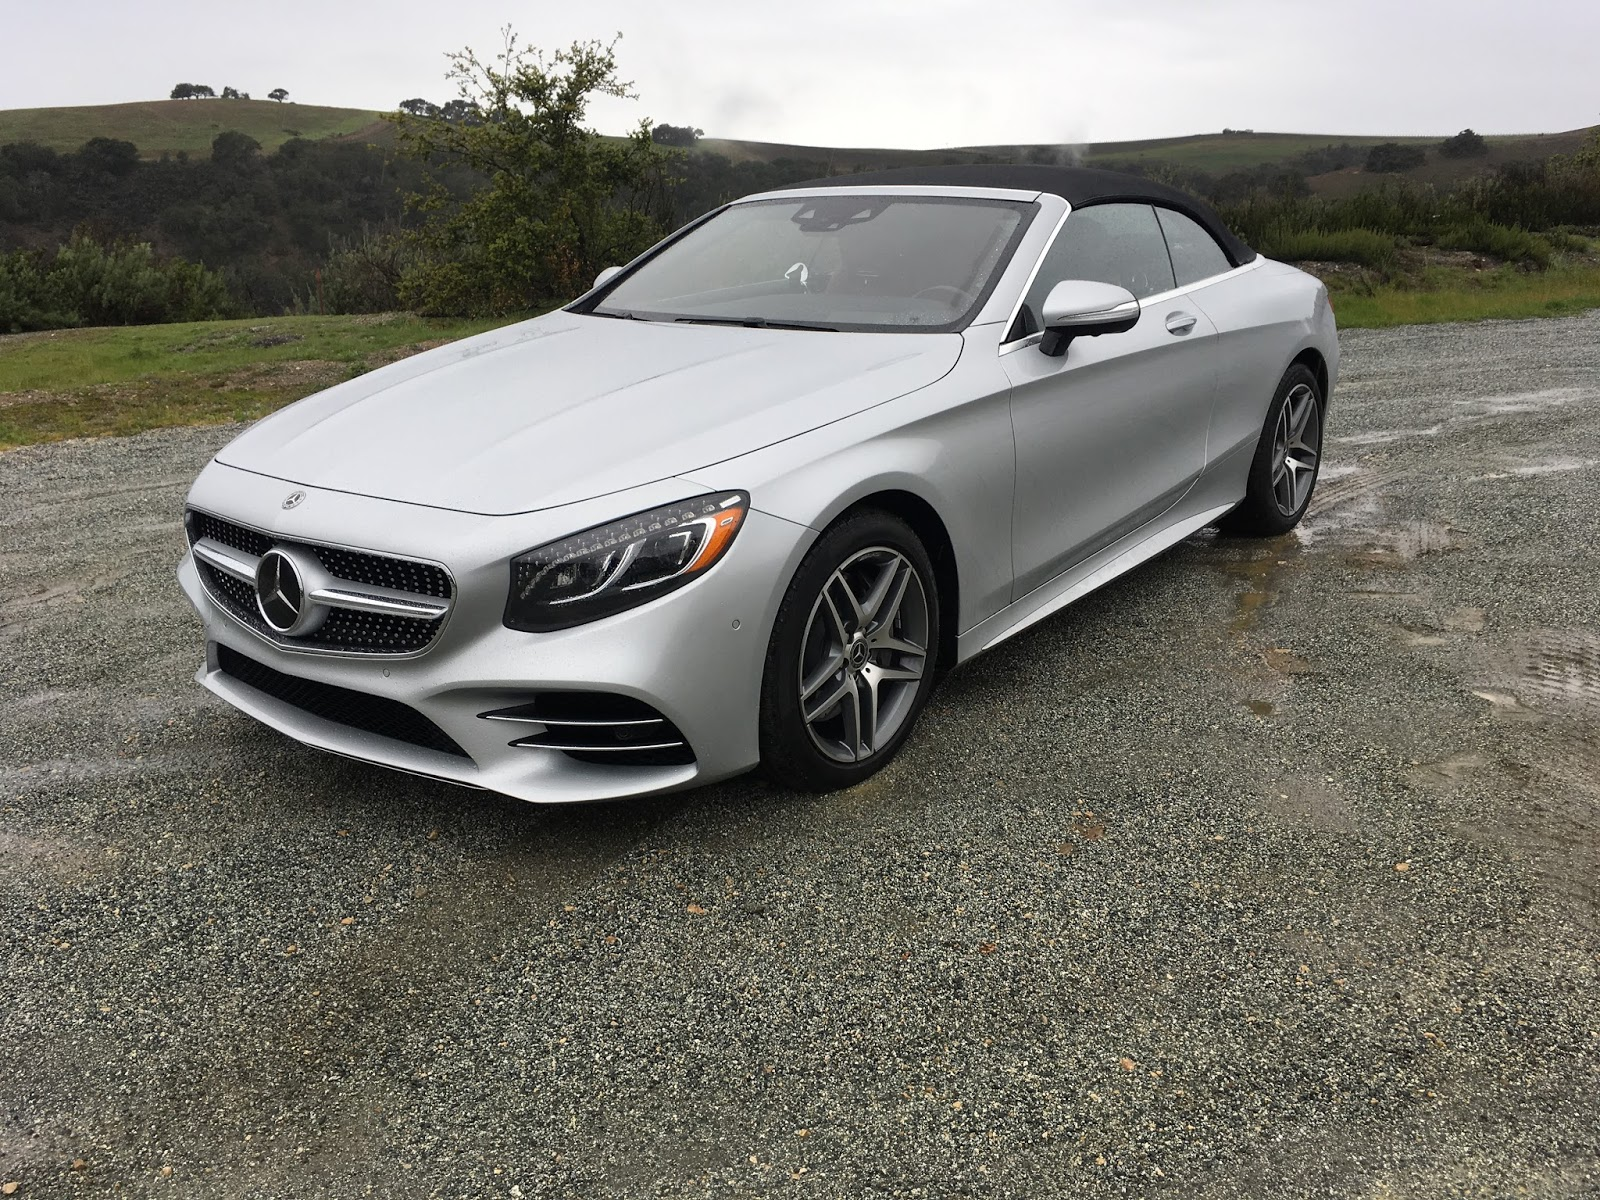 30 Well Actually 90 Minutes With The 2018 Mercedes Benz S560 Cabriolet